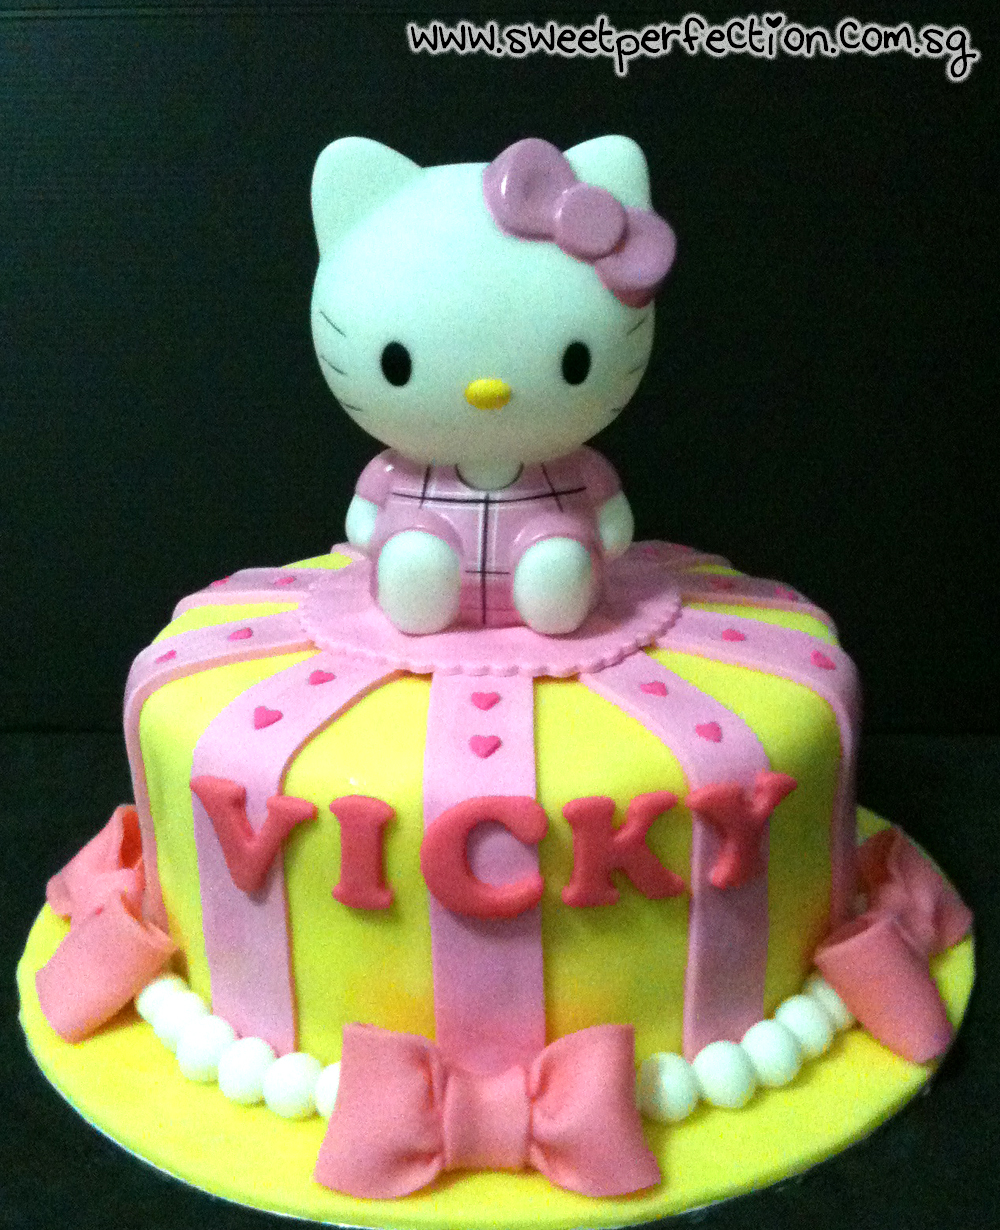 Sweet perfection cakes gallery code hk25 vicky hello kitty cake code hk25 vicky hello kitty cake sciox Gallery